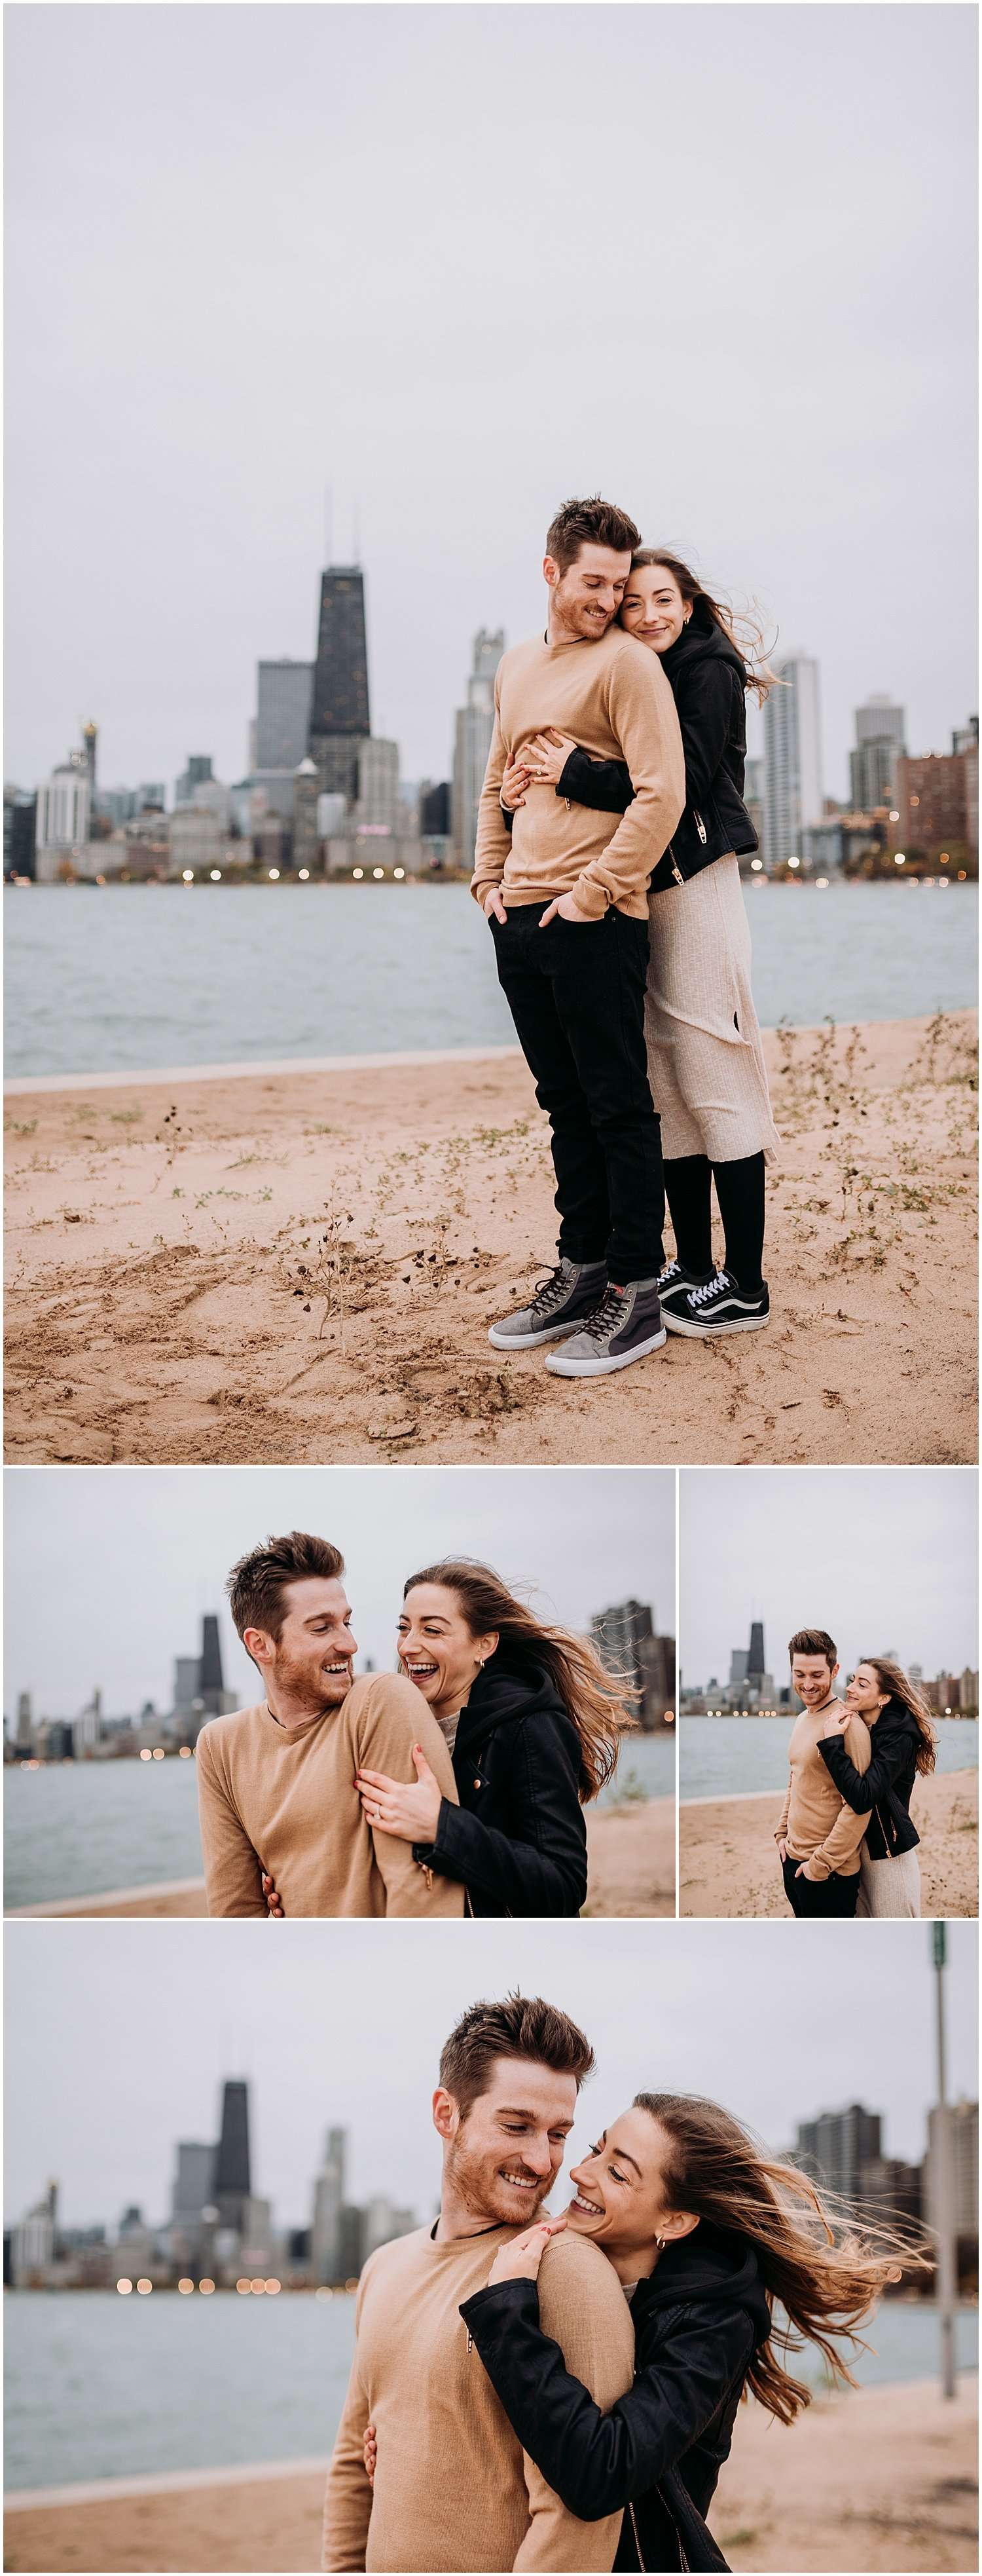 windy city, windy, lakefront, windy city lakefront, north ave, north avenue beach, north ave beach, lake michigan, lake, olive park, milton lee olive park, north shore, cloudy, fun, lifestyle, active, action, couple, couple session, engagement session, photographer, photography, best chicago engagement photographer, best chicago photographer, best chicago engagement session, engagement session ideas, chicago, city, cityscape, skyline, best chicago wedding photographer, iron and honey photography, iron and honey, what to wear engagement session, what to wear to session, what to wear couples session, vans, sneakers, laid back, casual, gloomy, cloudy, sunrise, fall, autumn